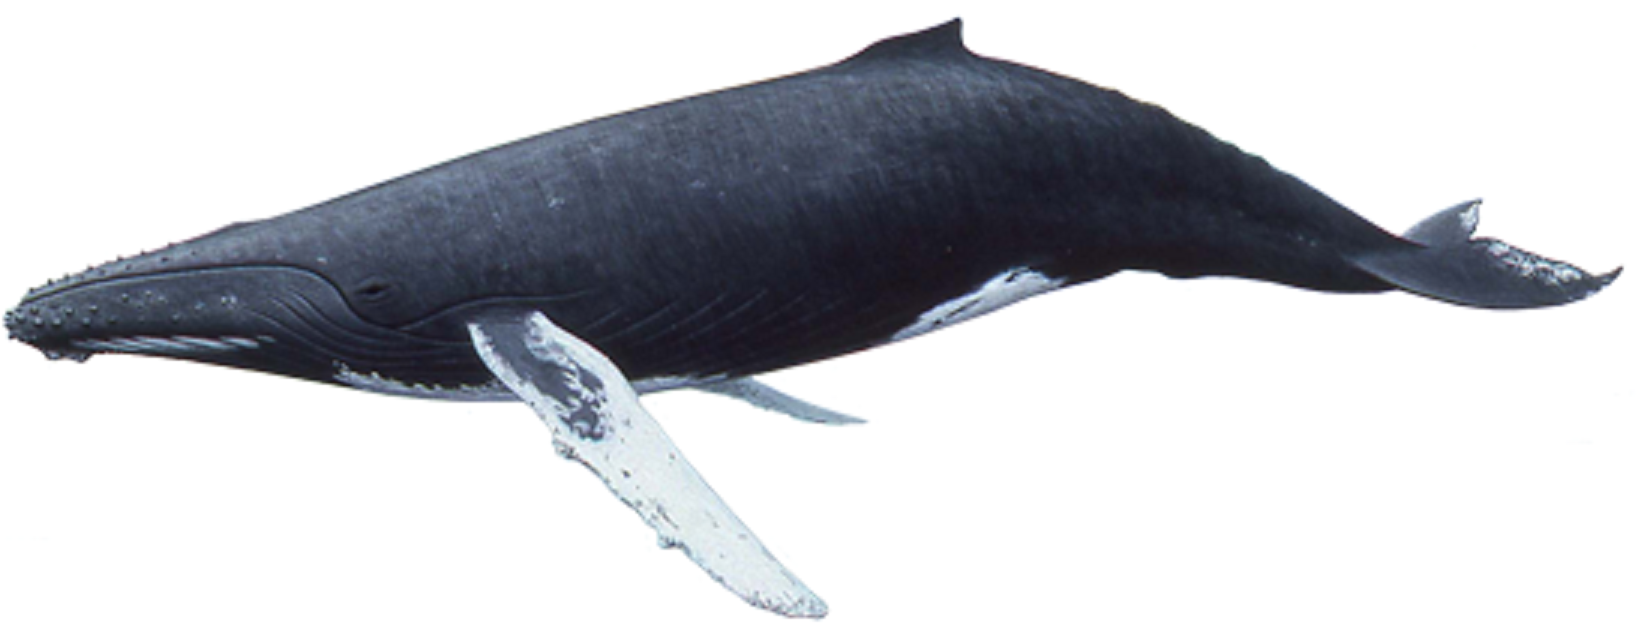 Art Illustration Oceans Seas Humpback Whales Megaptera Novaeangliae It Is One Of The Largest Whales Adults Have A Length O Whale Largest Whale Image